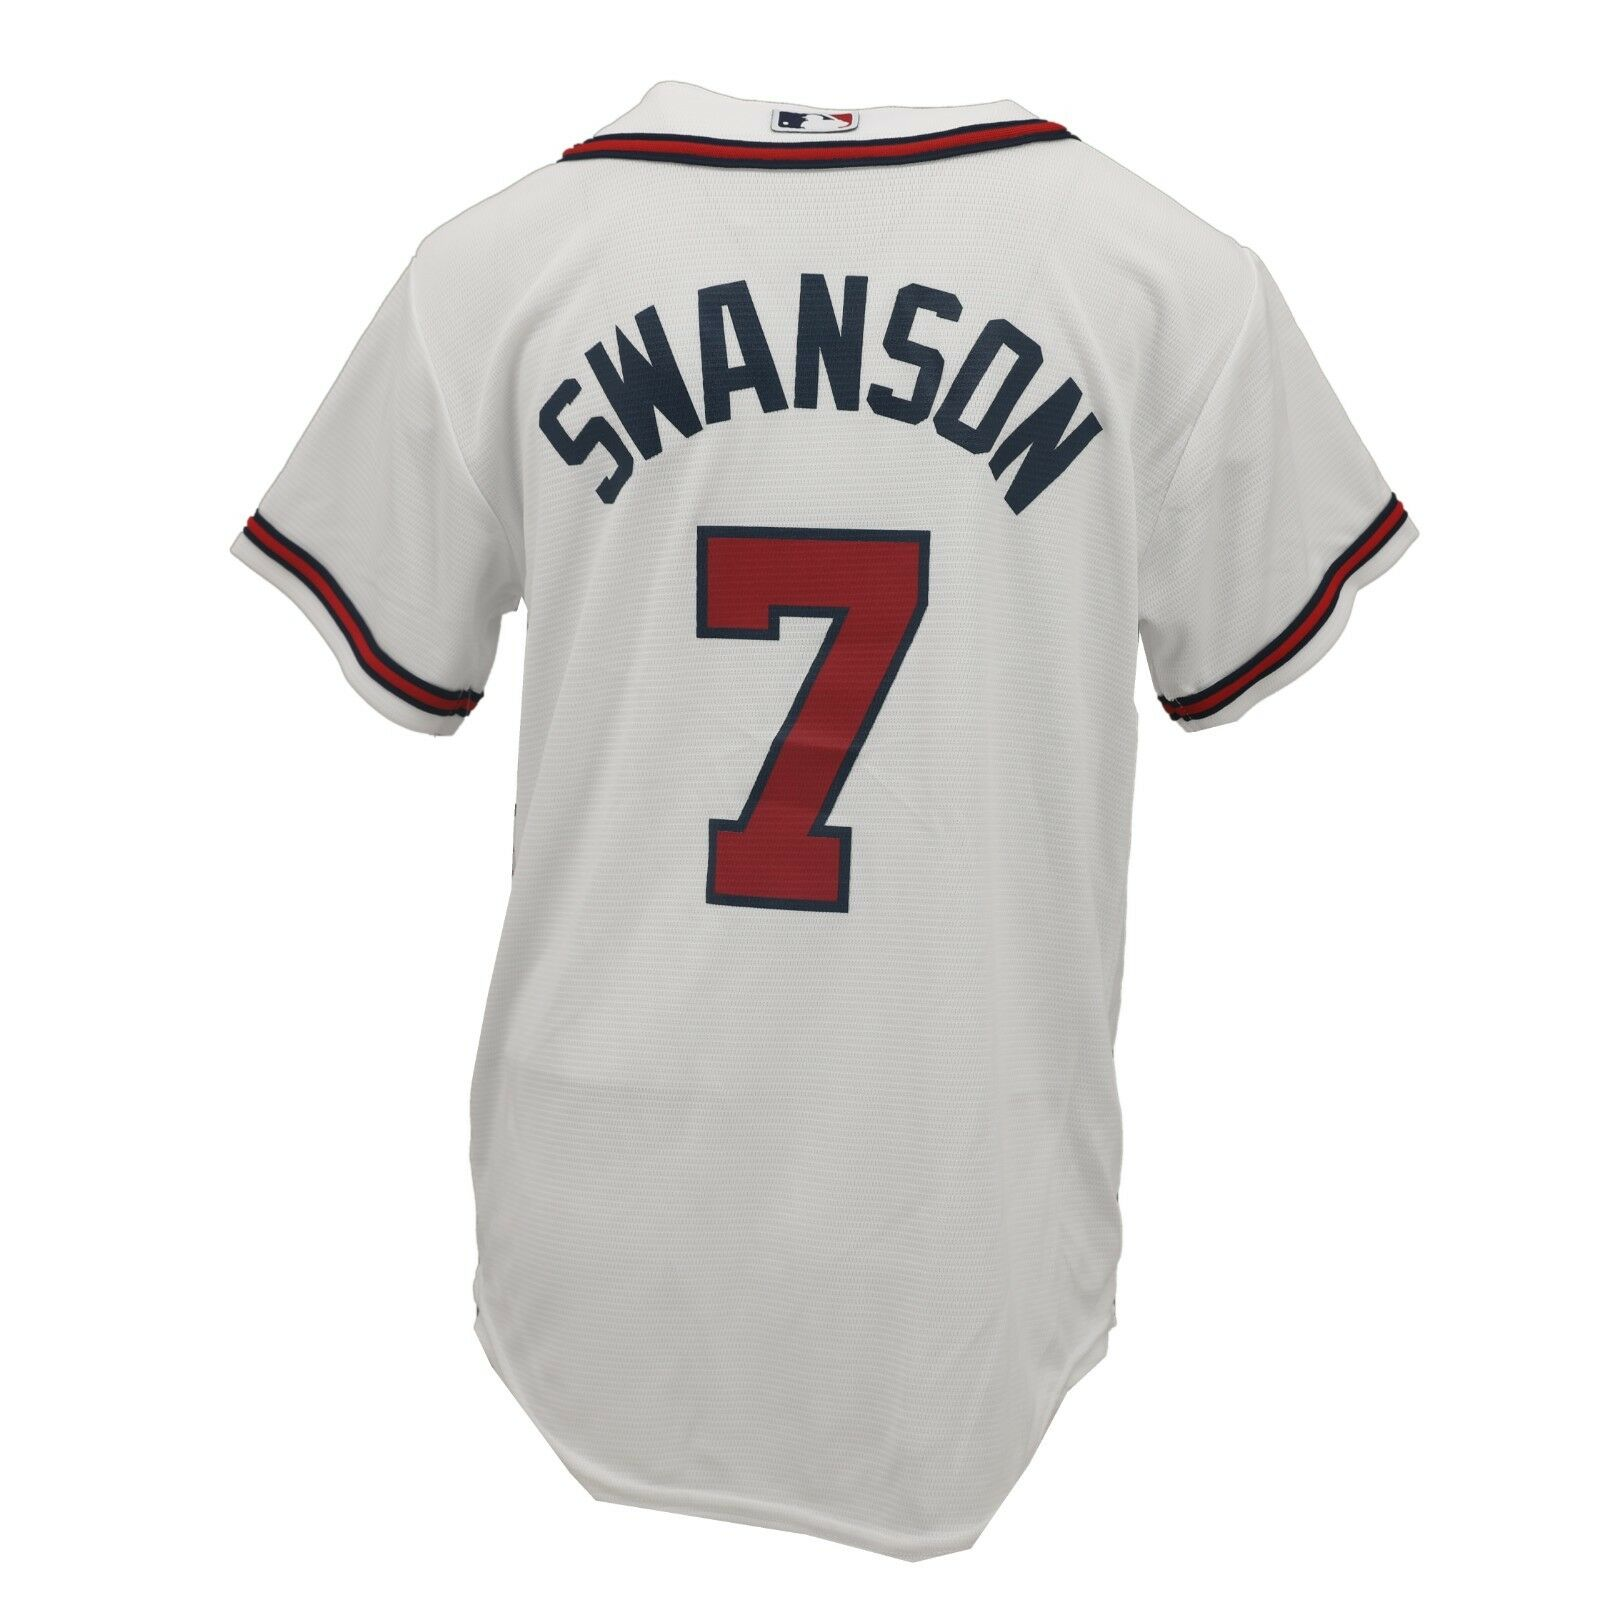 super popular e9306 724ef Details about Atlanta Braves MLB Genuine Kids Youth Size Dansby Swanson  Jersey New with Tags